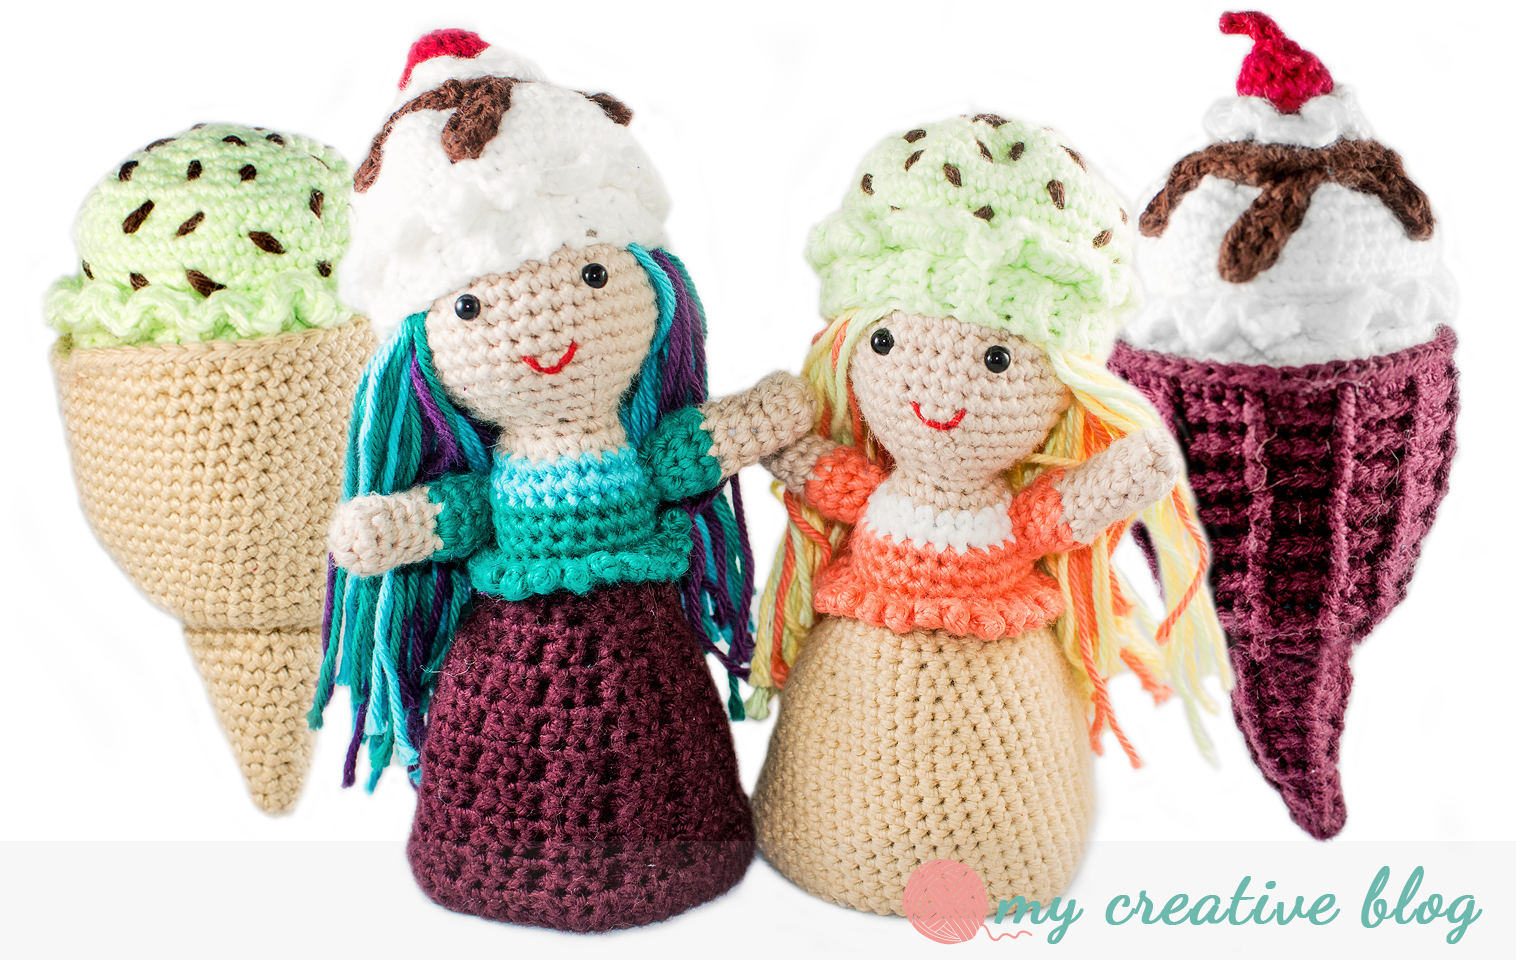 Ice cream cone doll crochet pattern my creative blog ice cream cone doll crochet pattern dt1010fo